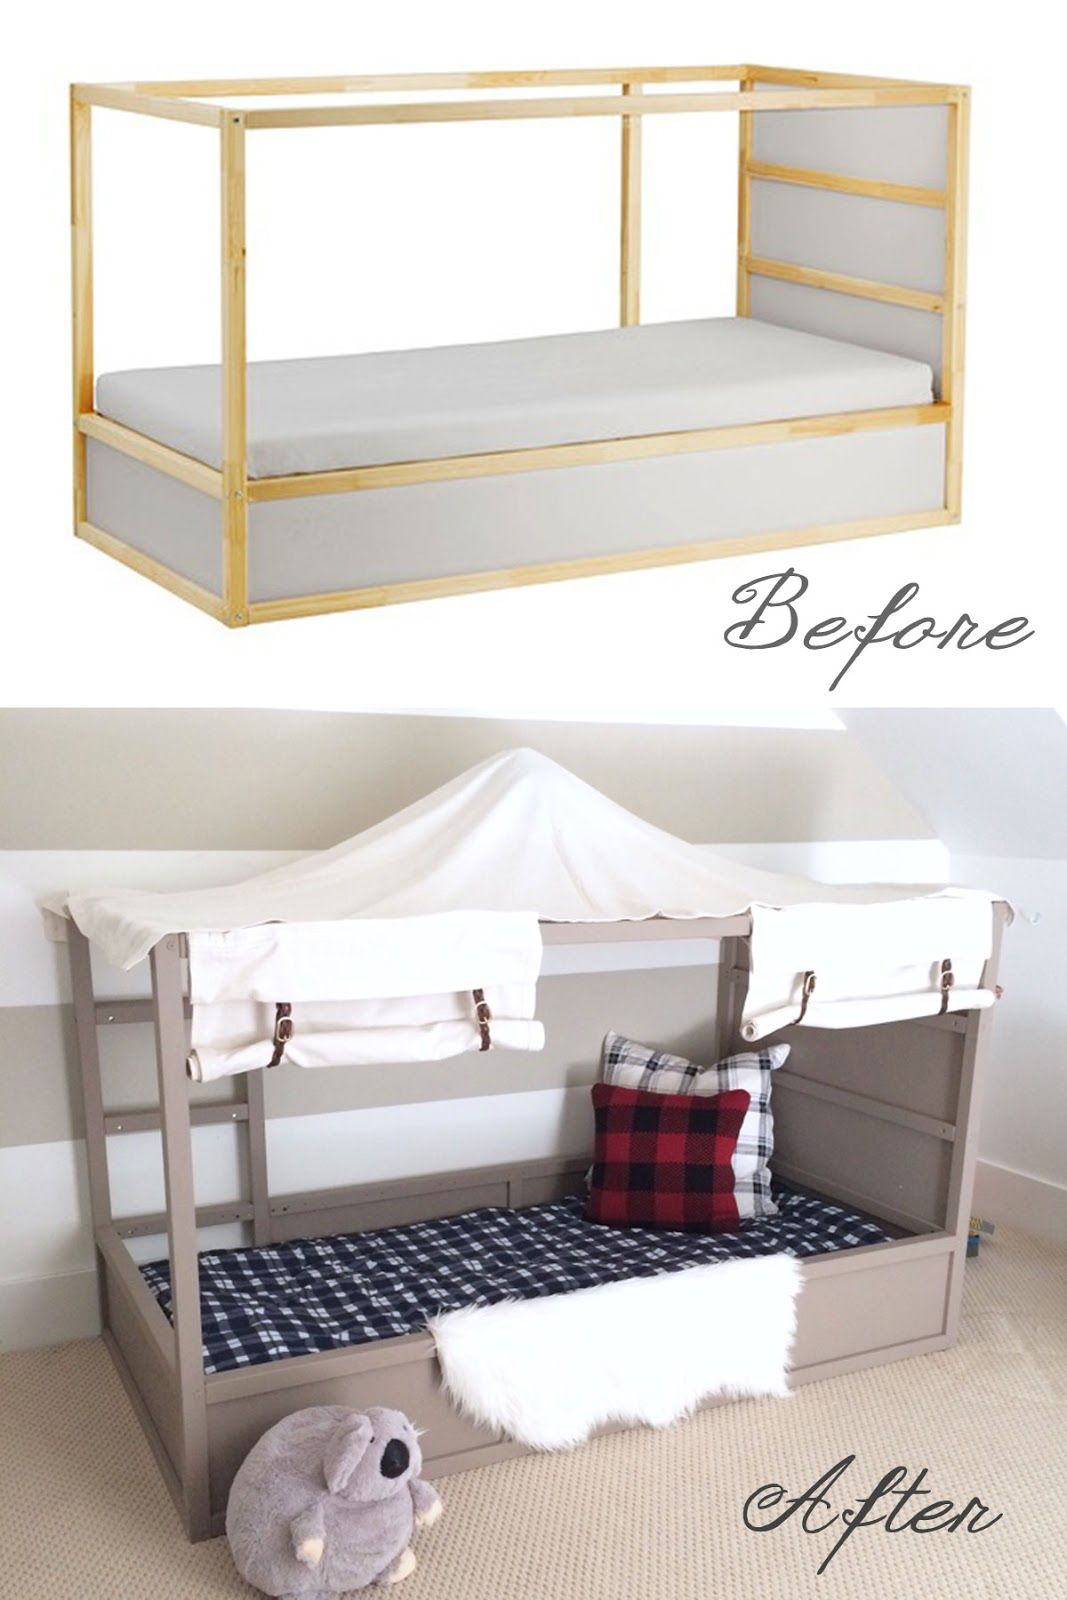 ikea kura bed hack diy boy canopy bed boys room pinterest chambre enfant chambres et lit. Black Bedroom Furniture Sets. Home Design Ideas